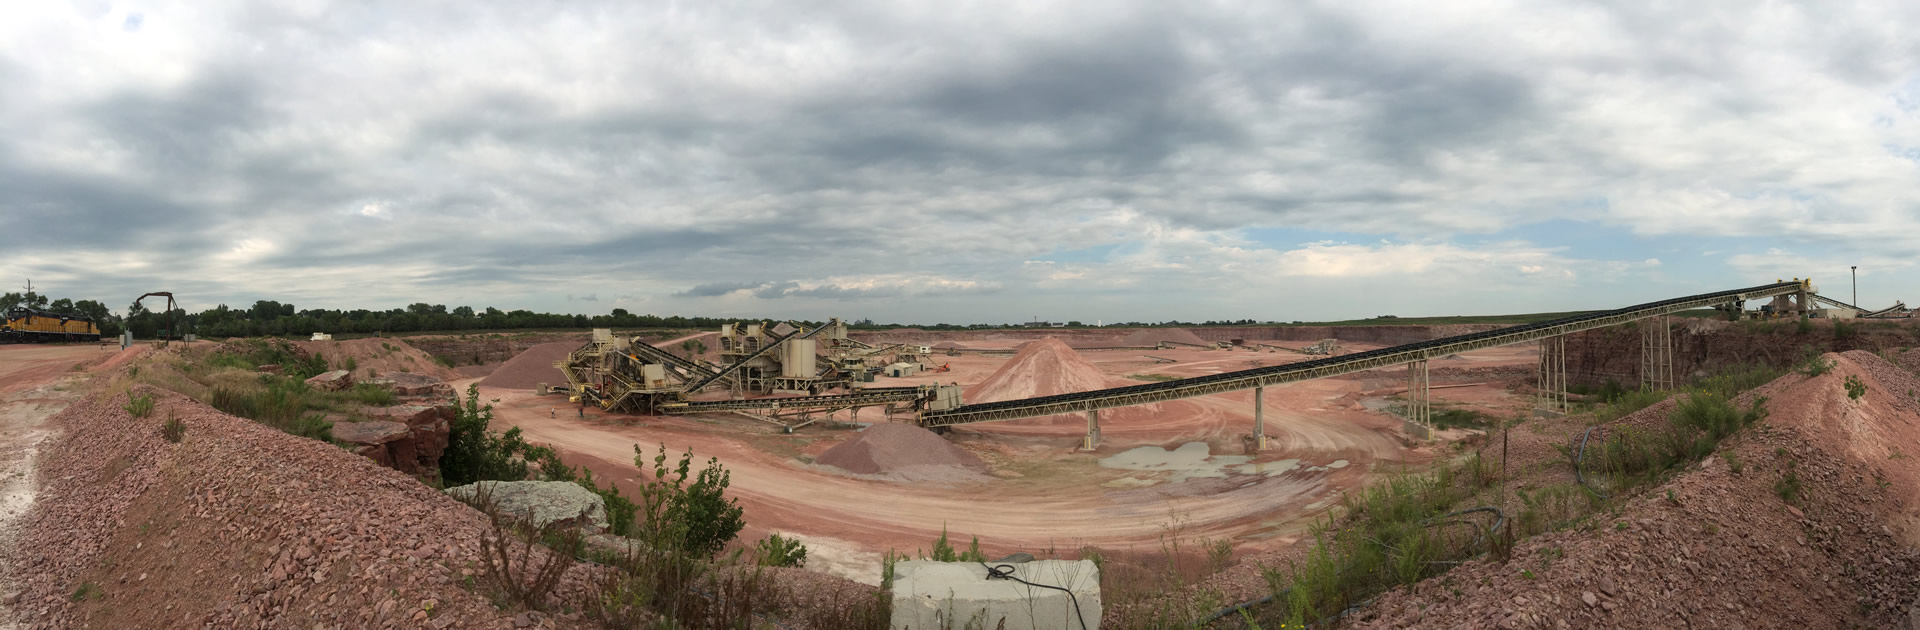 Quarry Photo